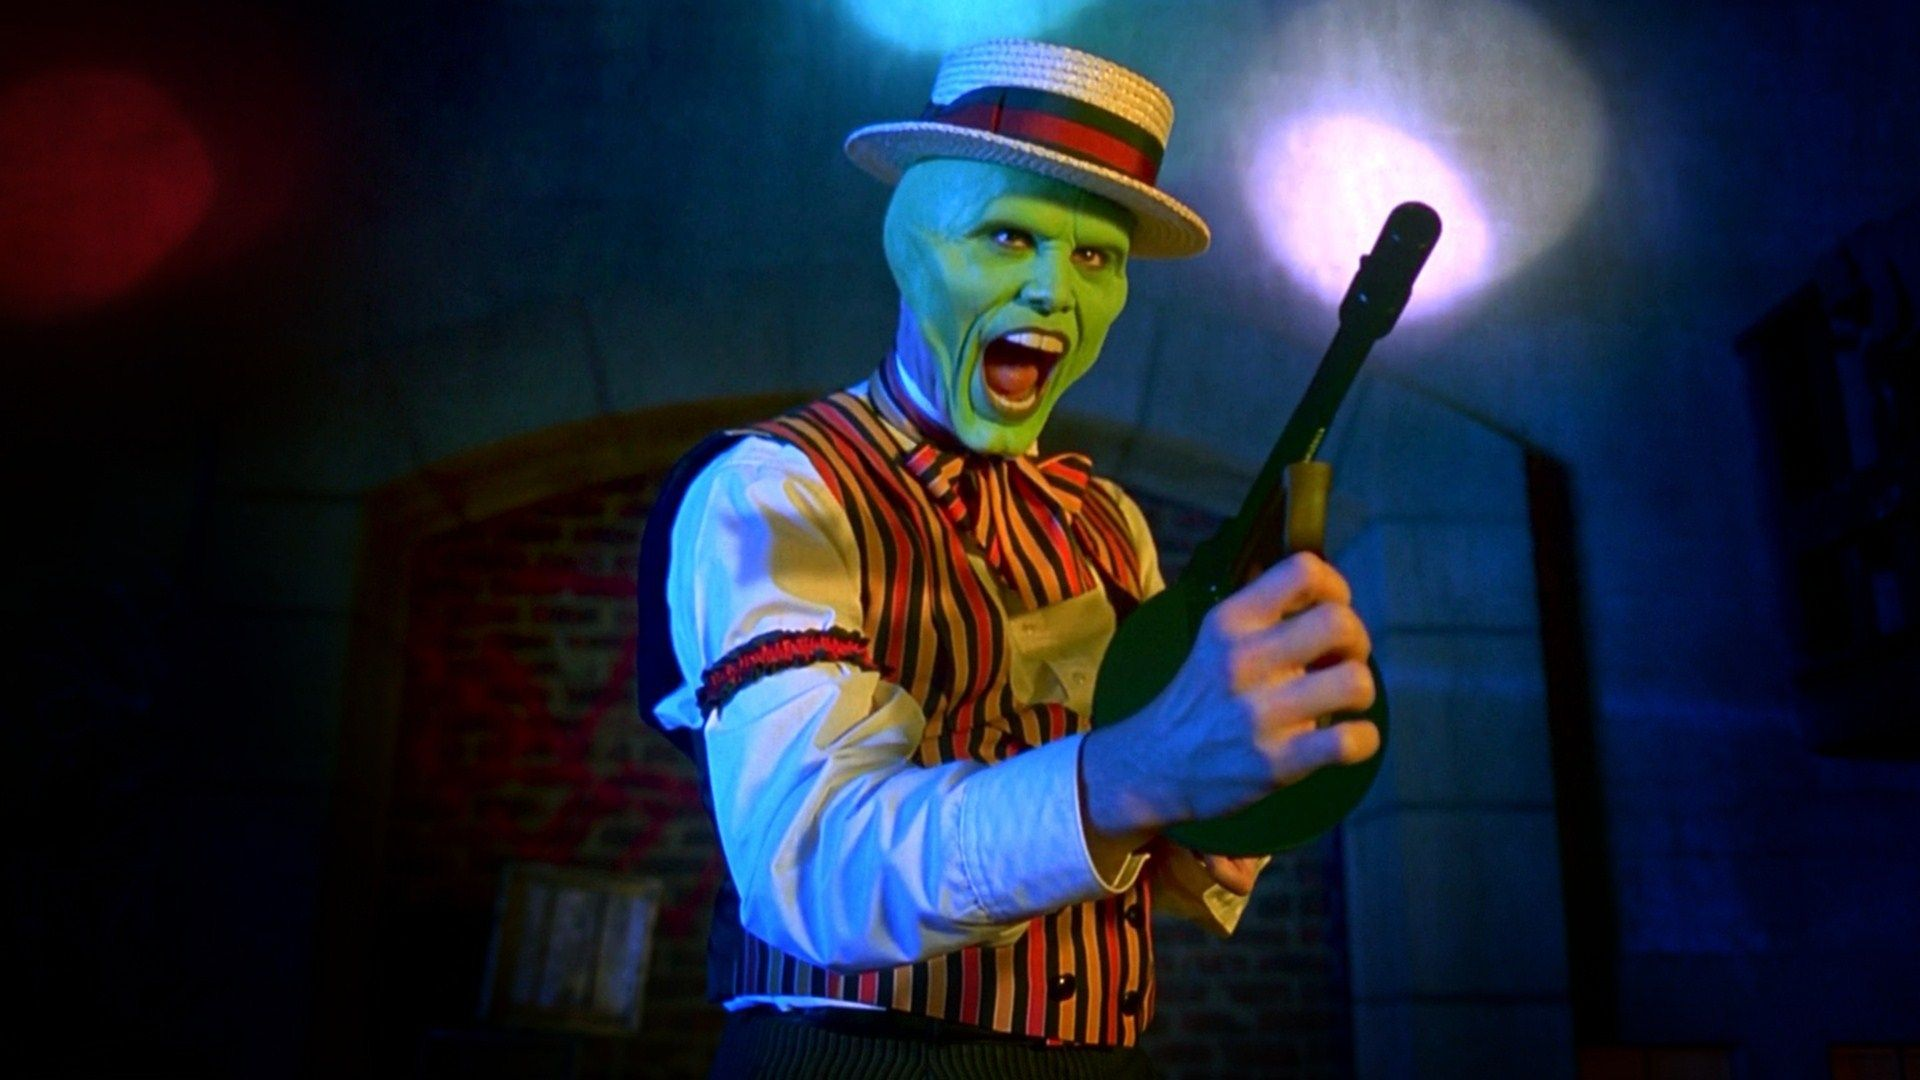 The Mask Jim Carrey Wallpaper Classic Movie Posters Classic Movies Film Fan